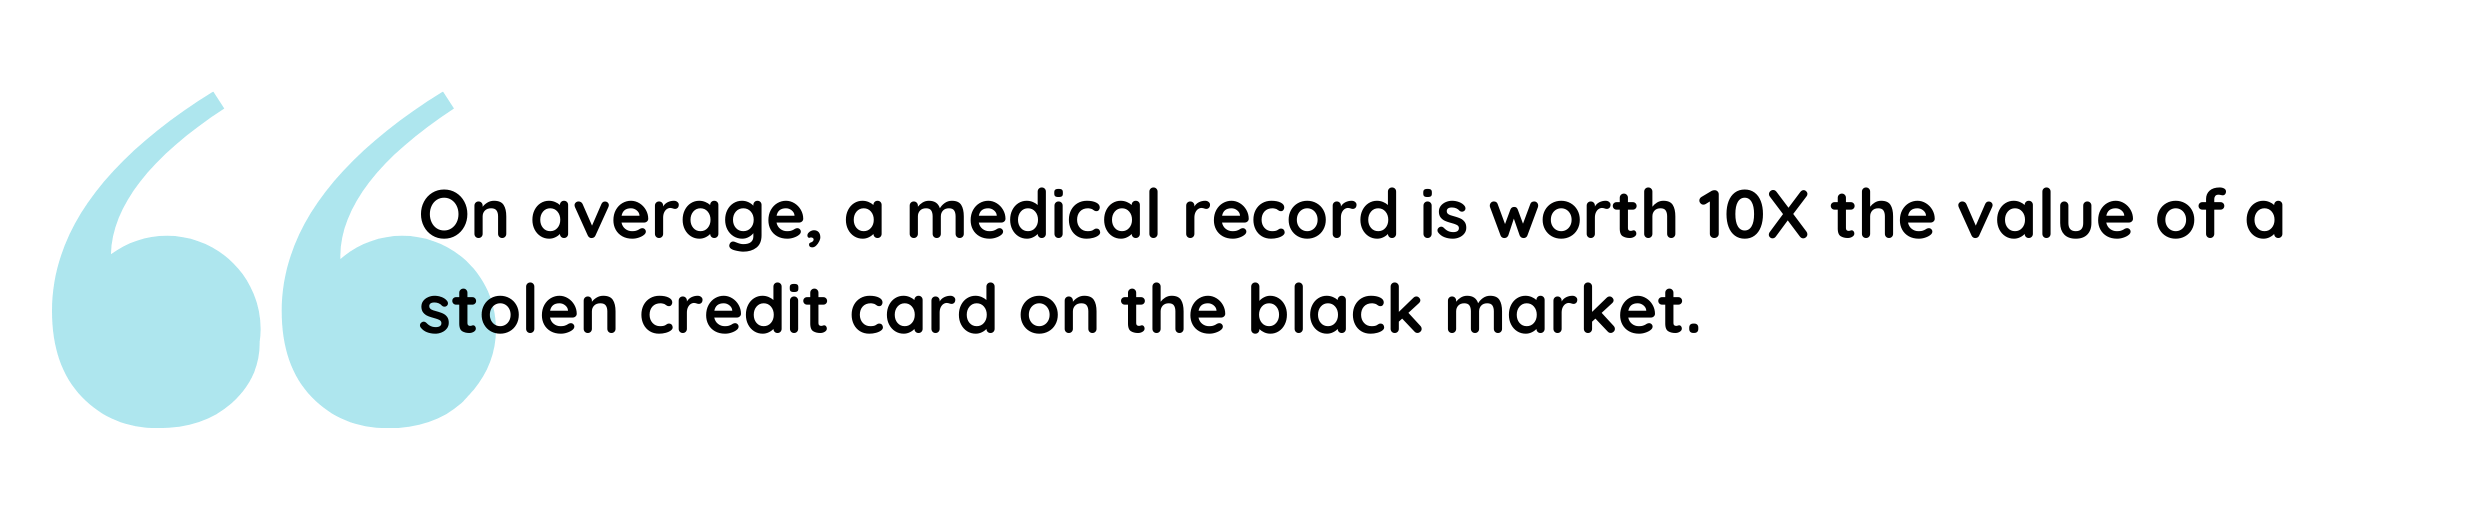 On average, a medical record is worth ten times the value of a stolen credit card on the black market.